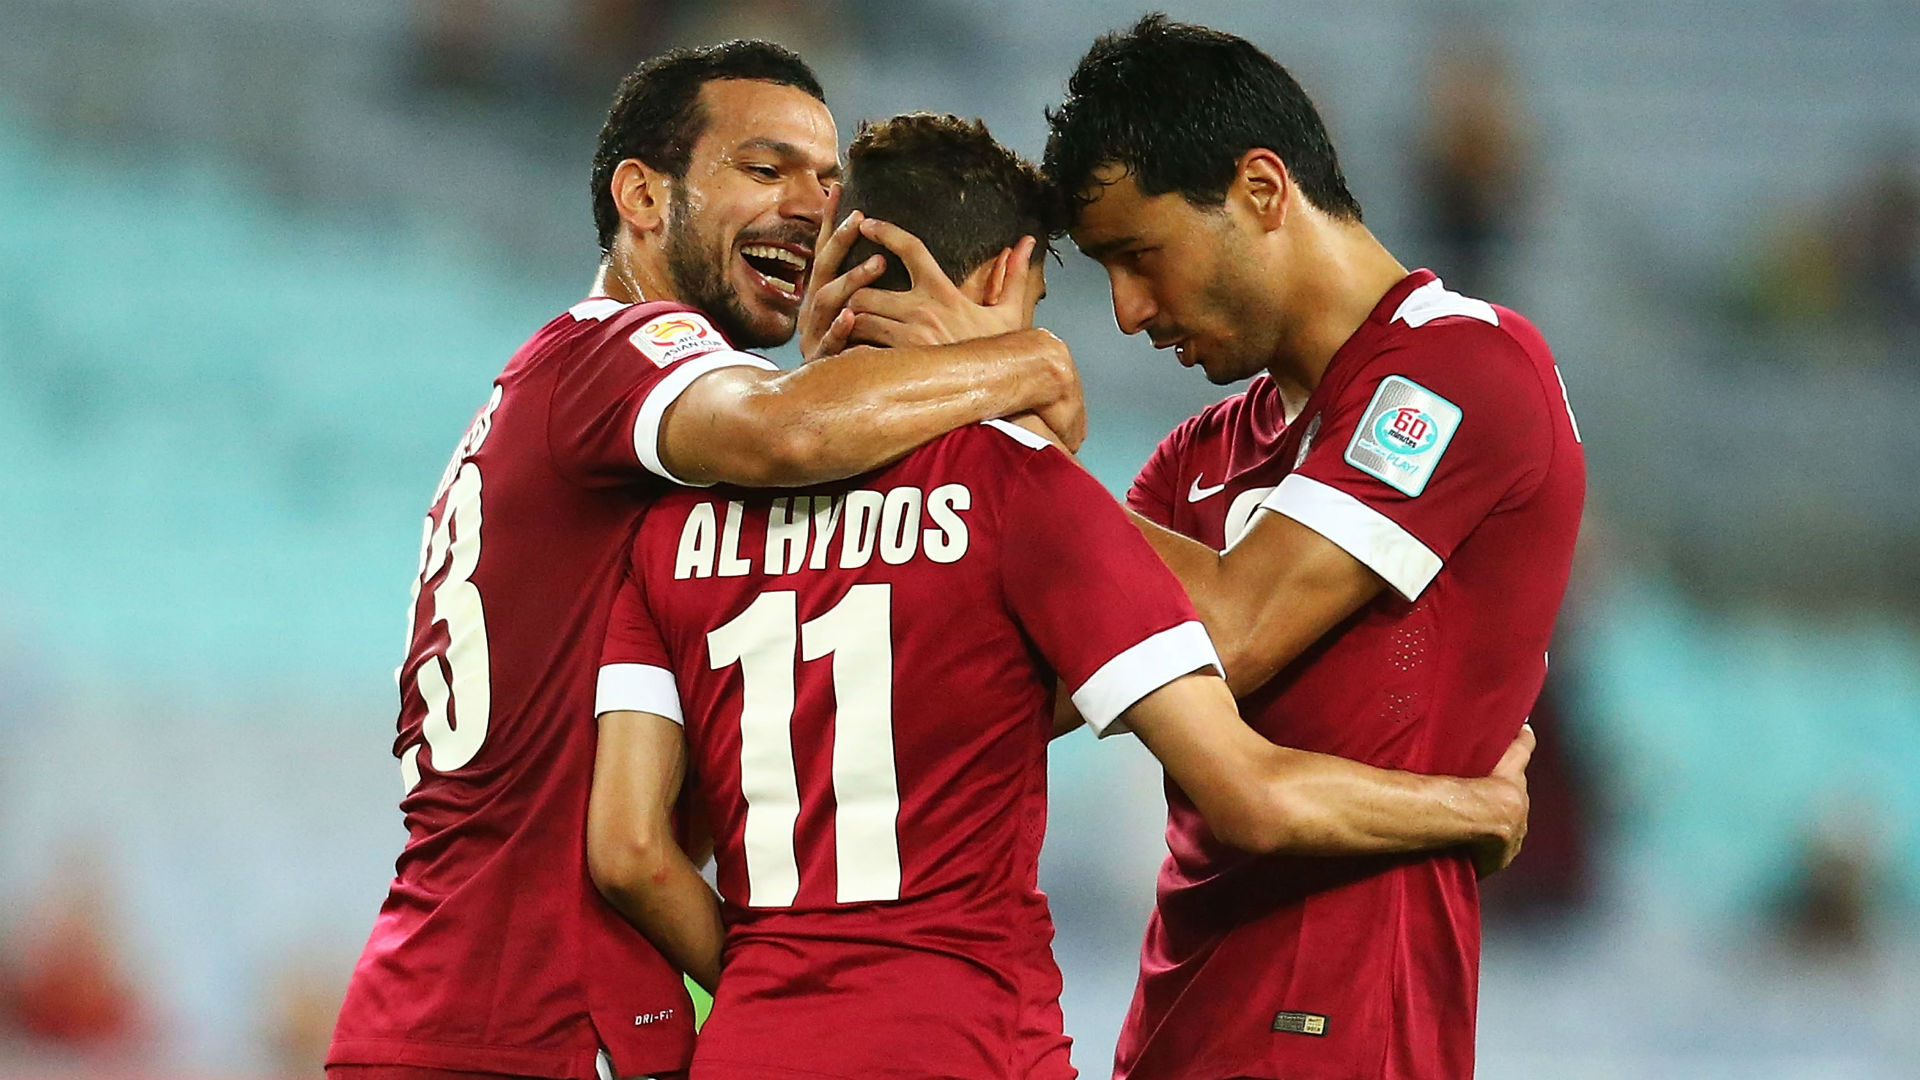 Qatar soccer team face punishment over emir T-shirts